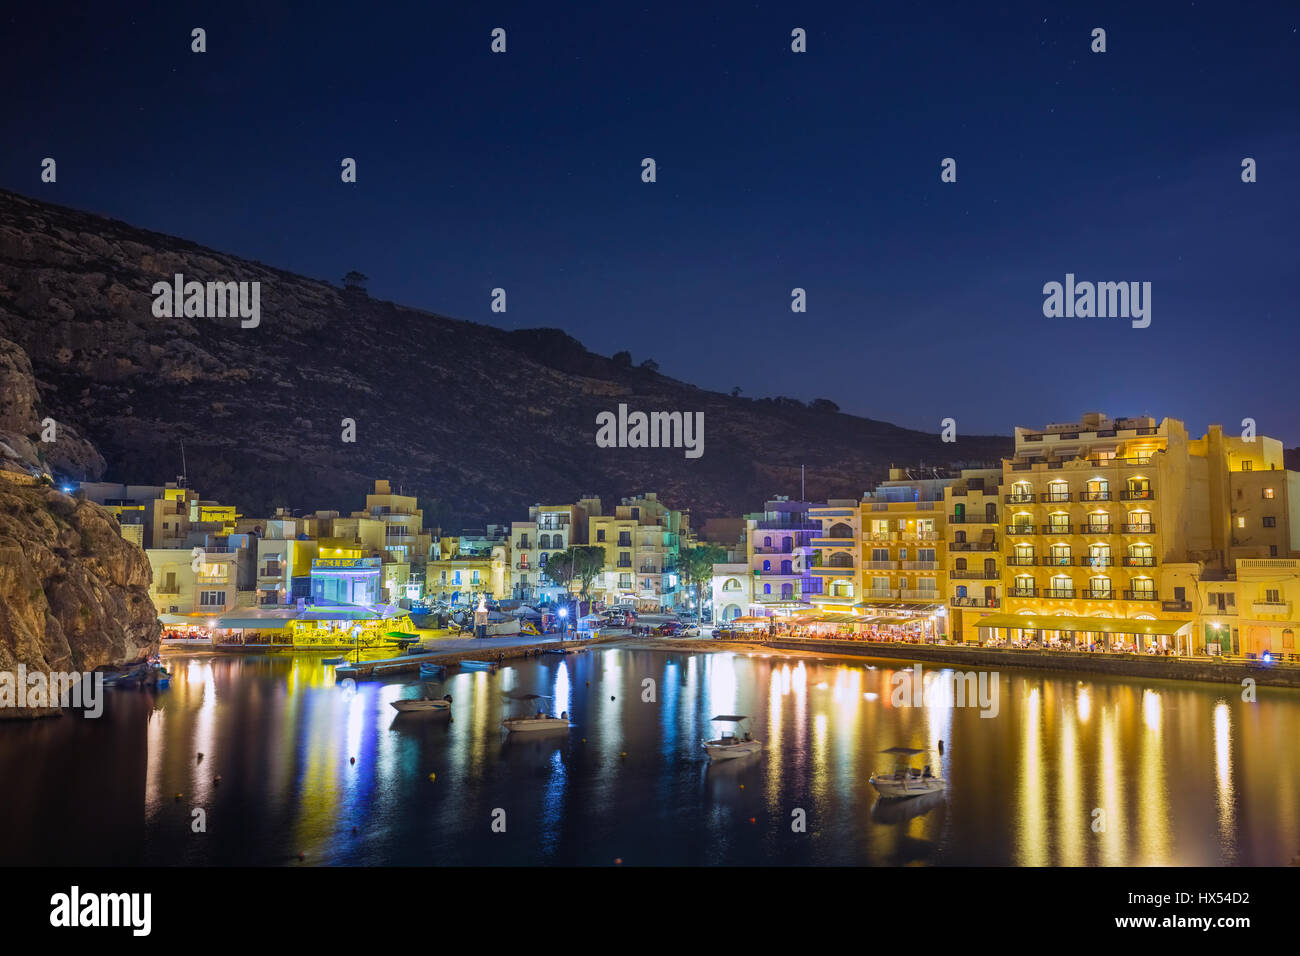 Xlendi, Gozo - Beautiful aerial view over Xlendi Bay by night with restaurants and busy night life on the Island - Stock Image